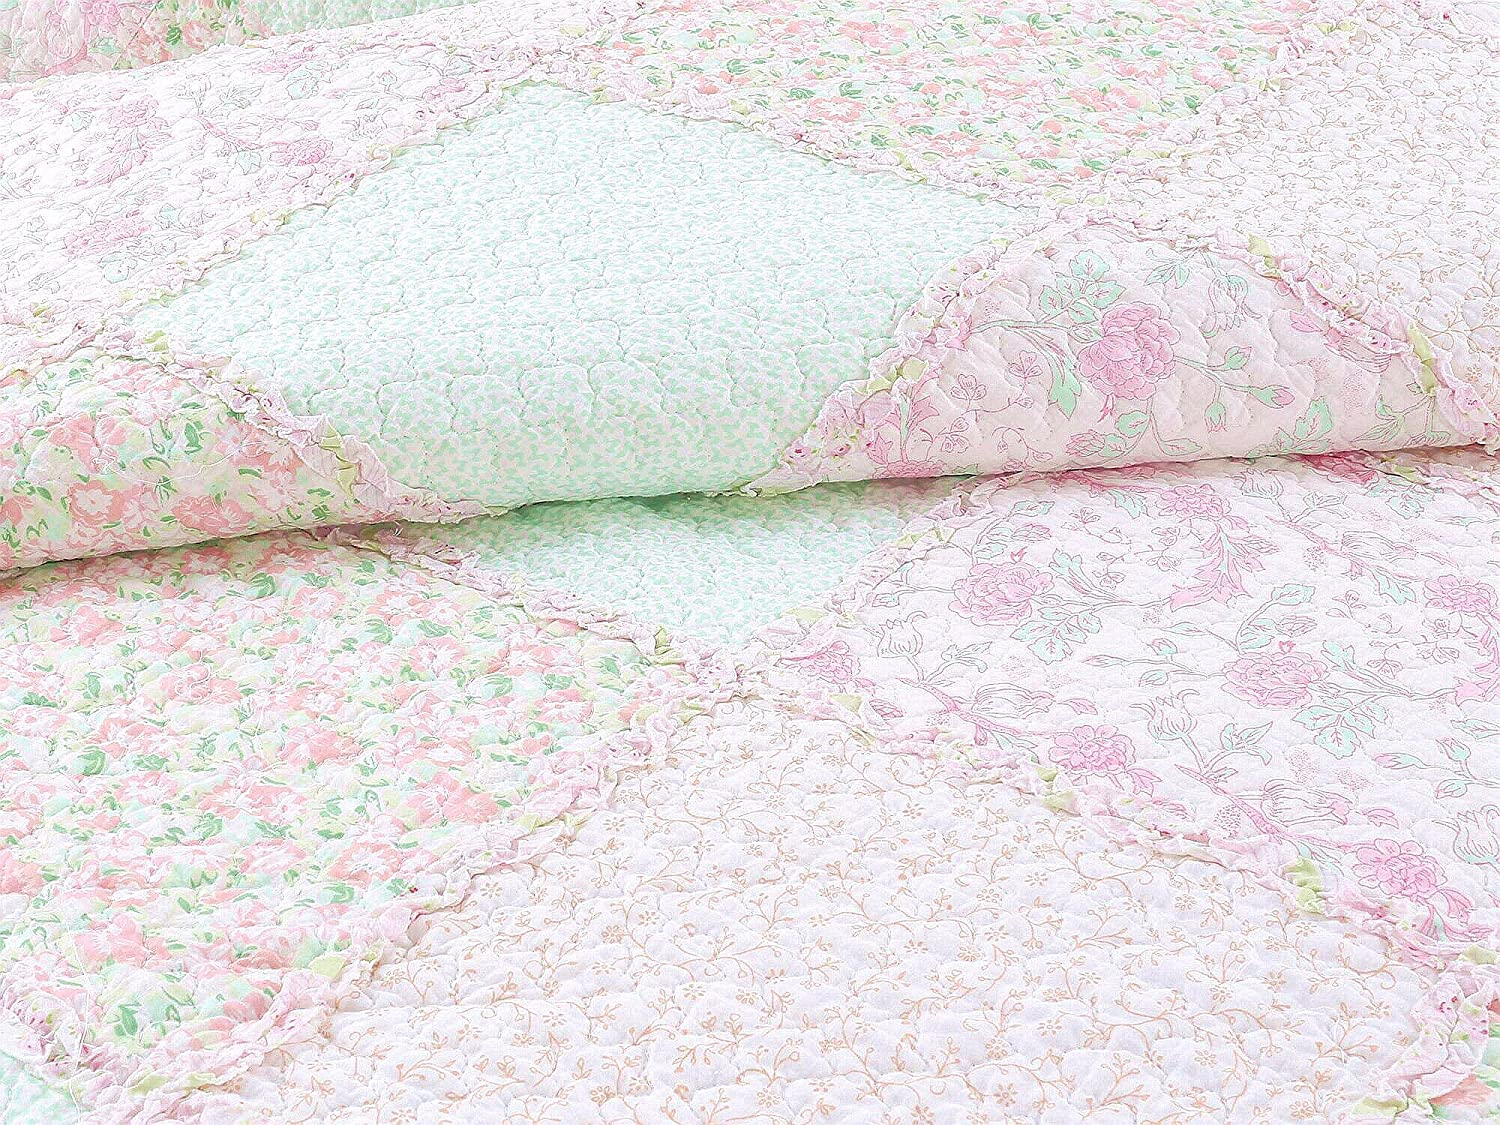 Vintage Story Cushion Shabby Patchwork 60x60cm 2 Cozy Line Home Fashions La Rosa Rve Quilt Bedding Set Floral Pink Green Rose Flower 3d Real Patchwork100 Cotton Reversible Coverlet